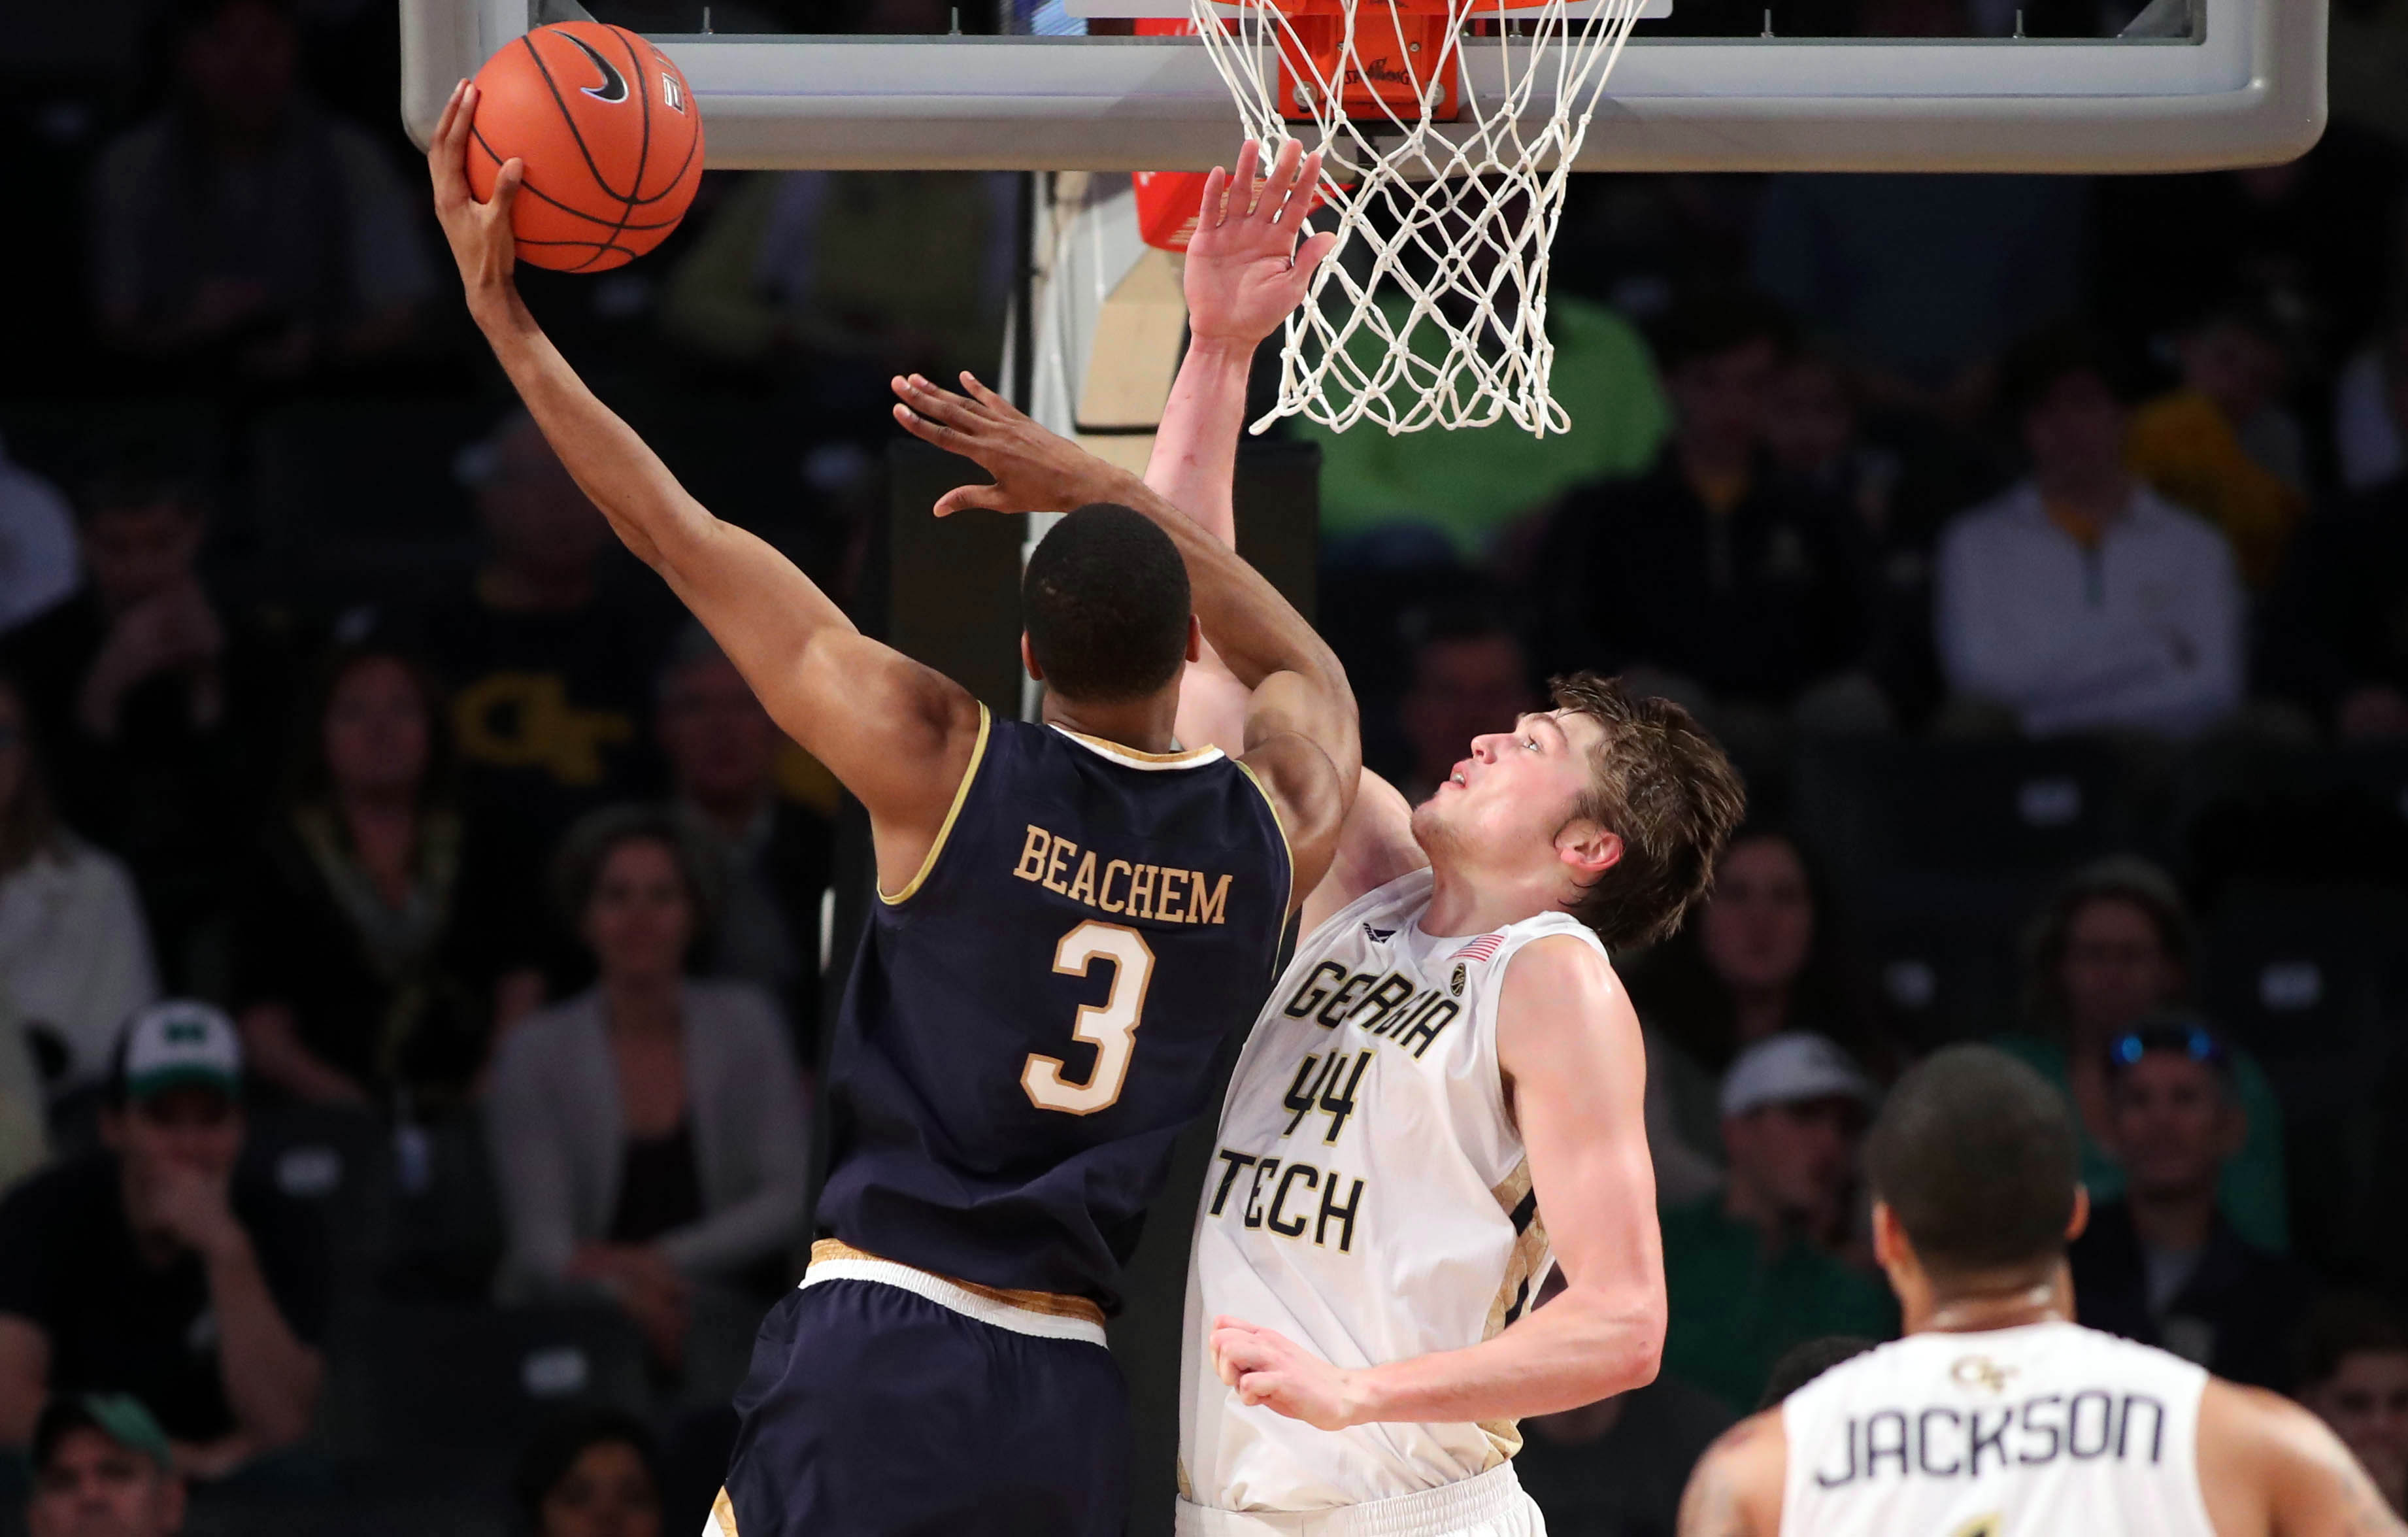 Georgia Tech upsets Irish 62-60 as Okogie scores at buzzer